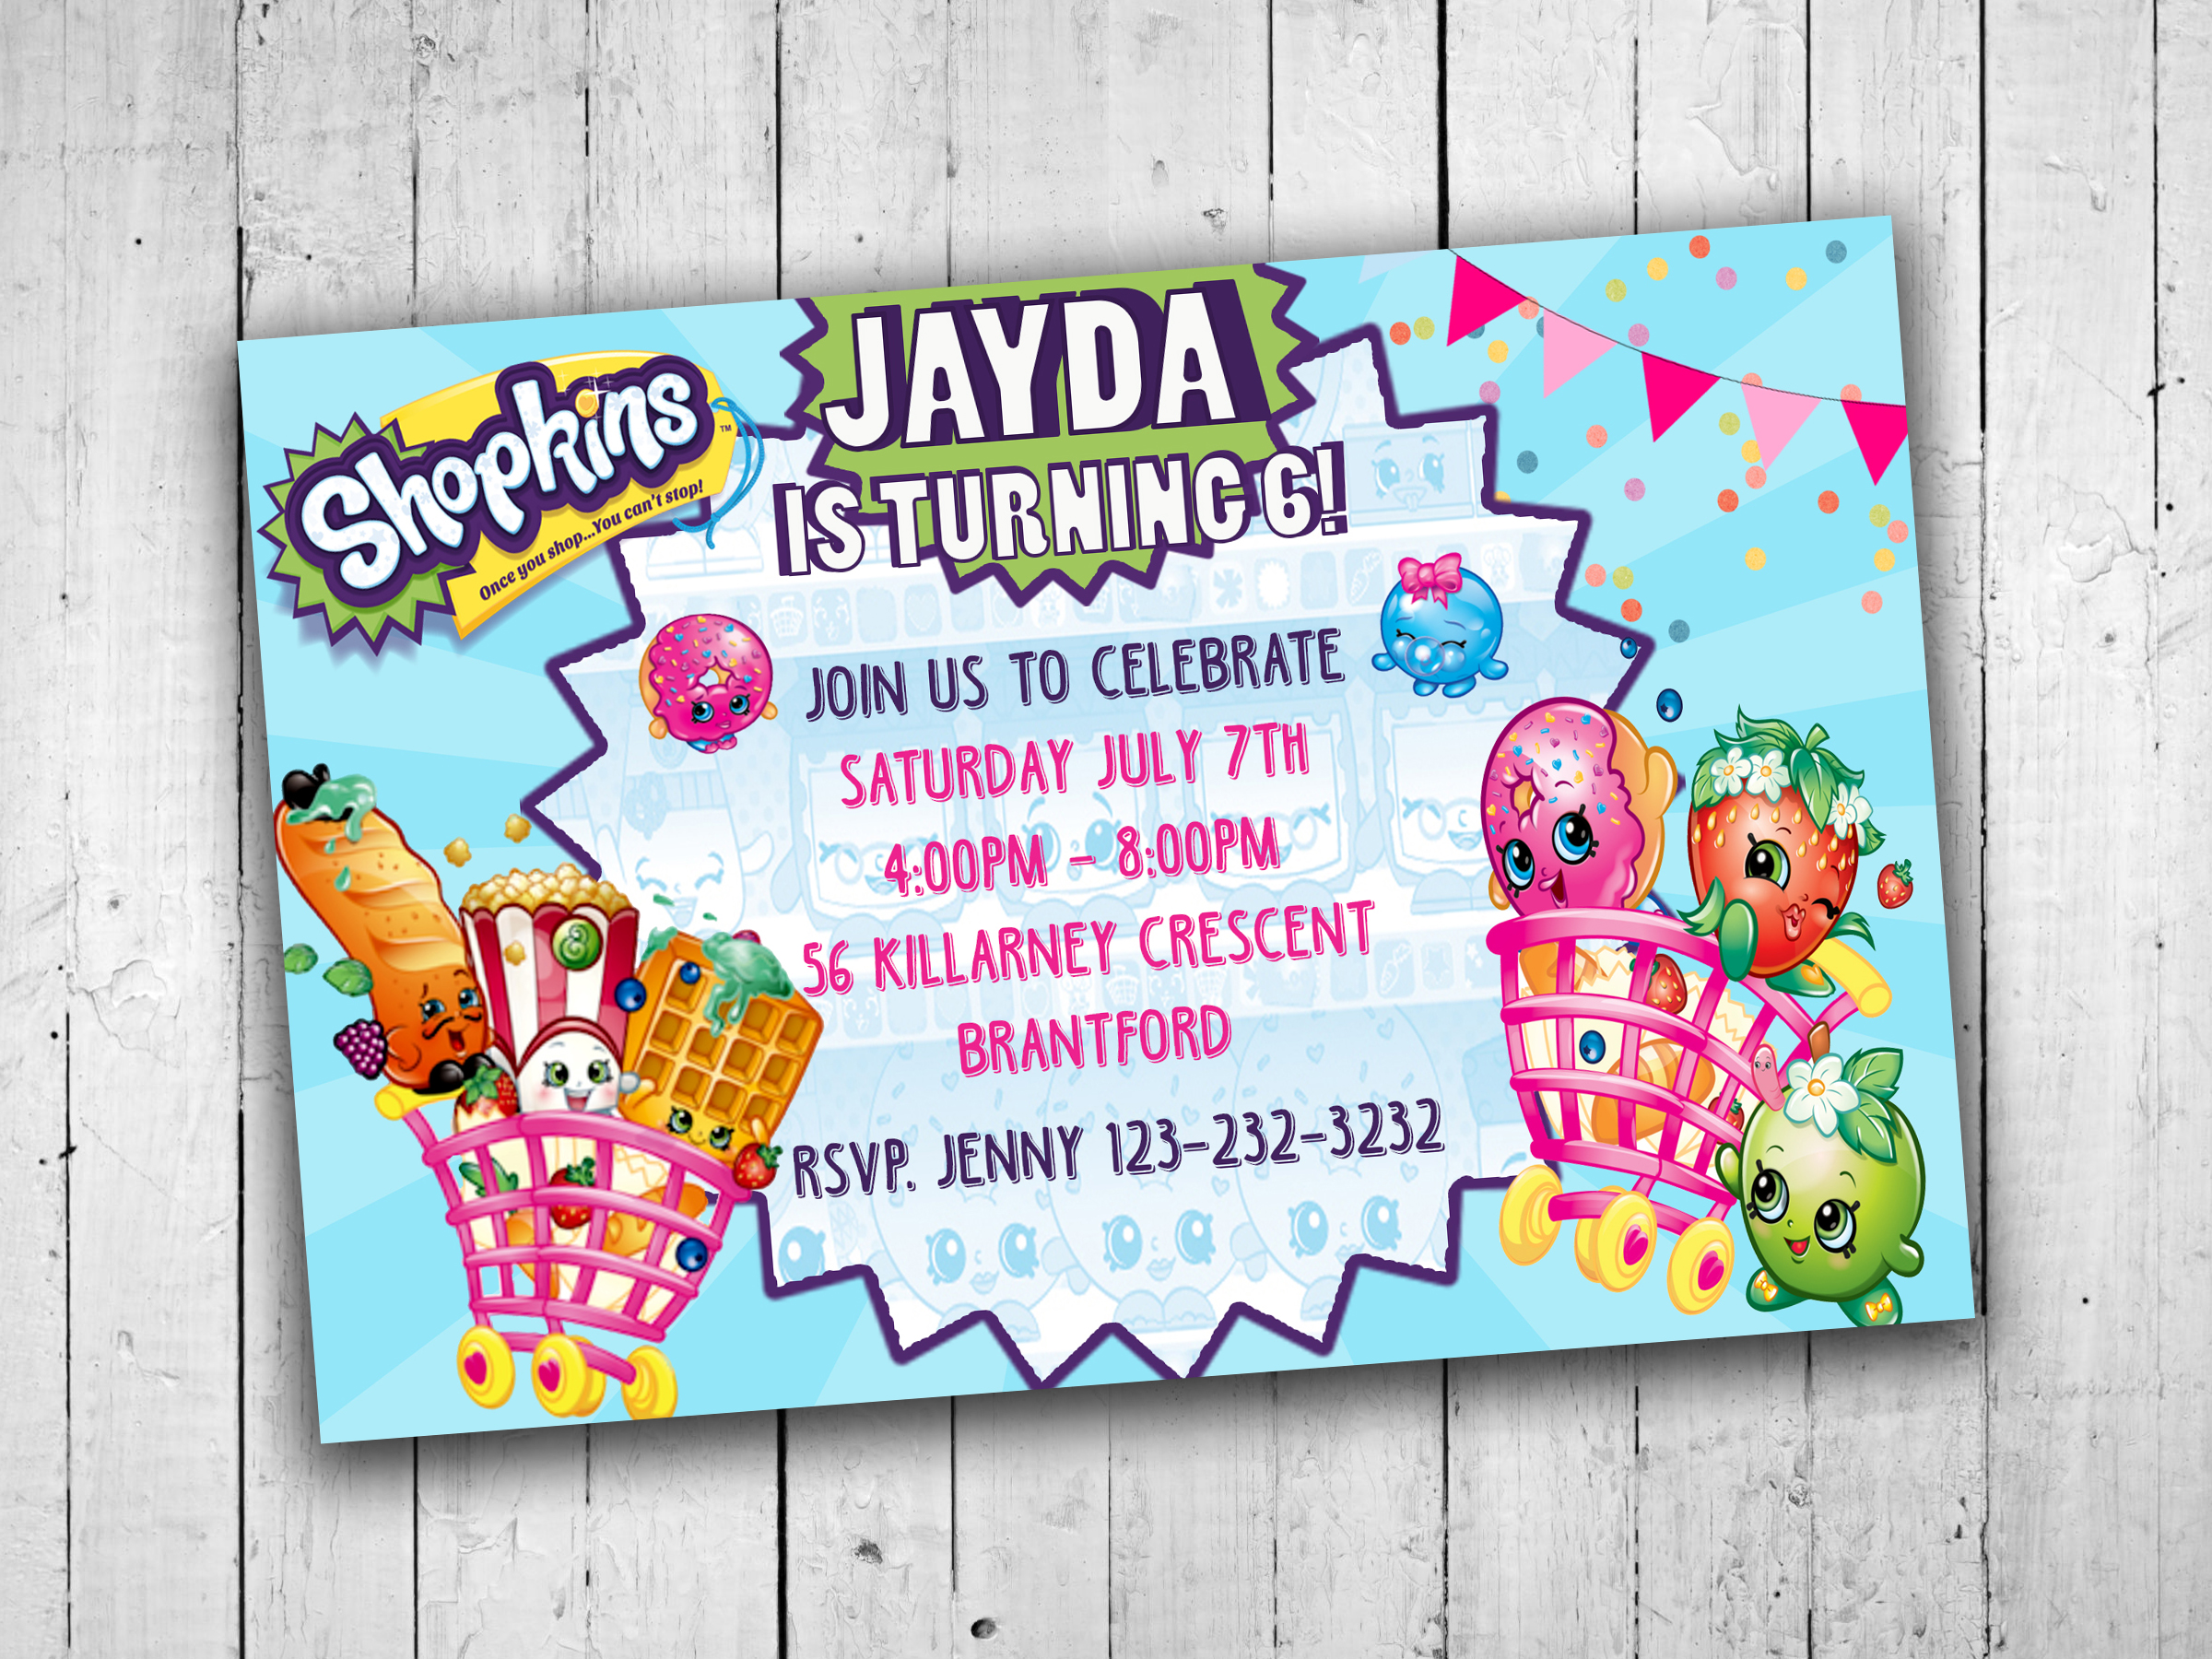 graphic regarding Shopkins Printable Invitations named Shopkins Bash Invites, Youngsters Bash Printables, Little ones Occasion Invitations, Printable Invites, Young children Birthday Occasion Invites bought as a result of KidsPartyPrints